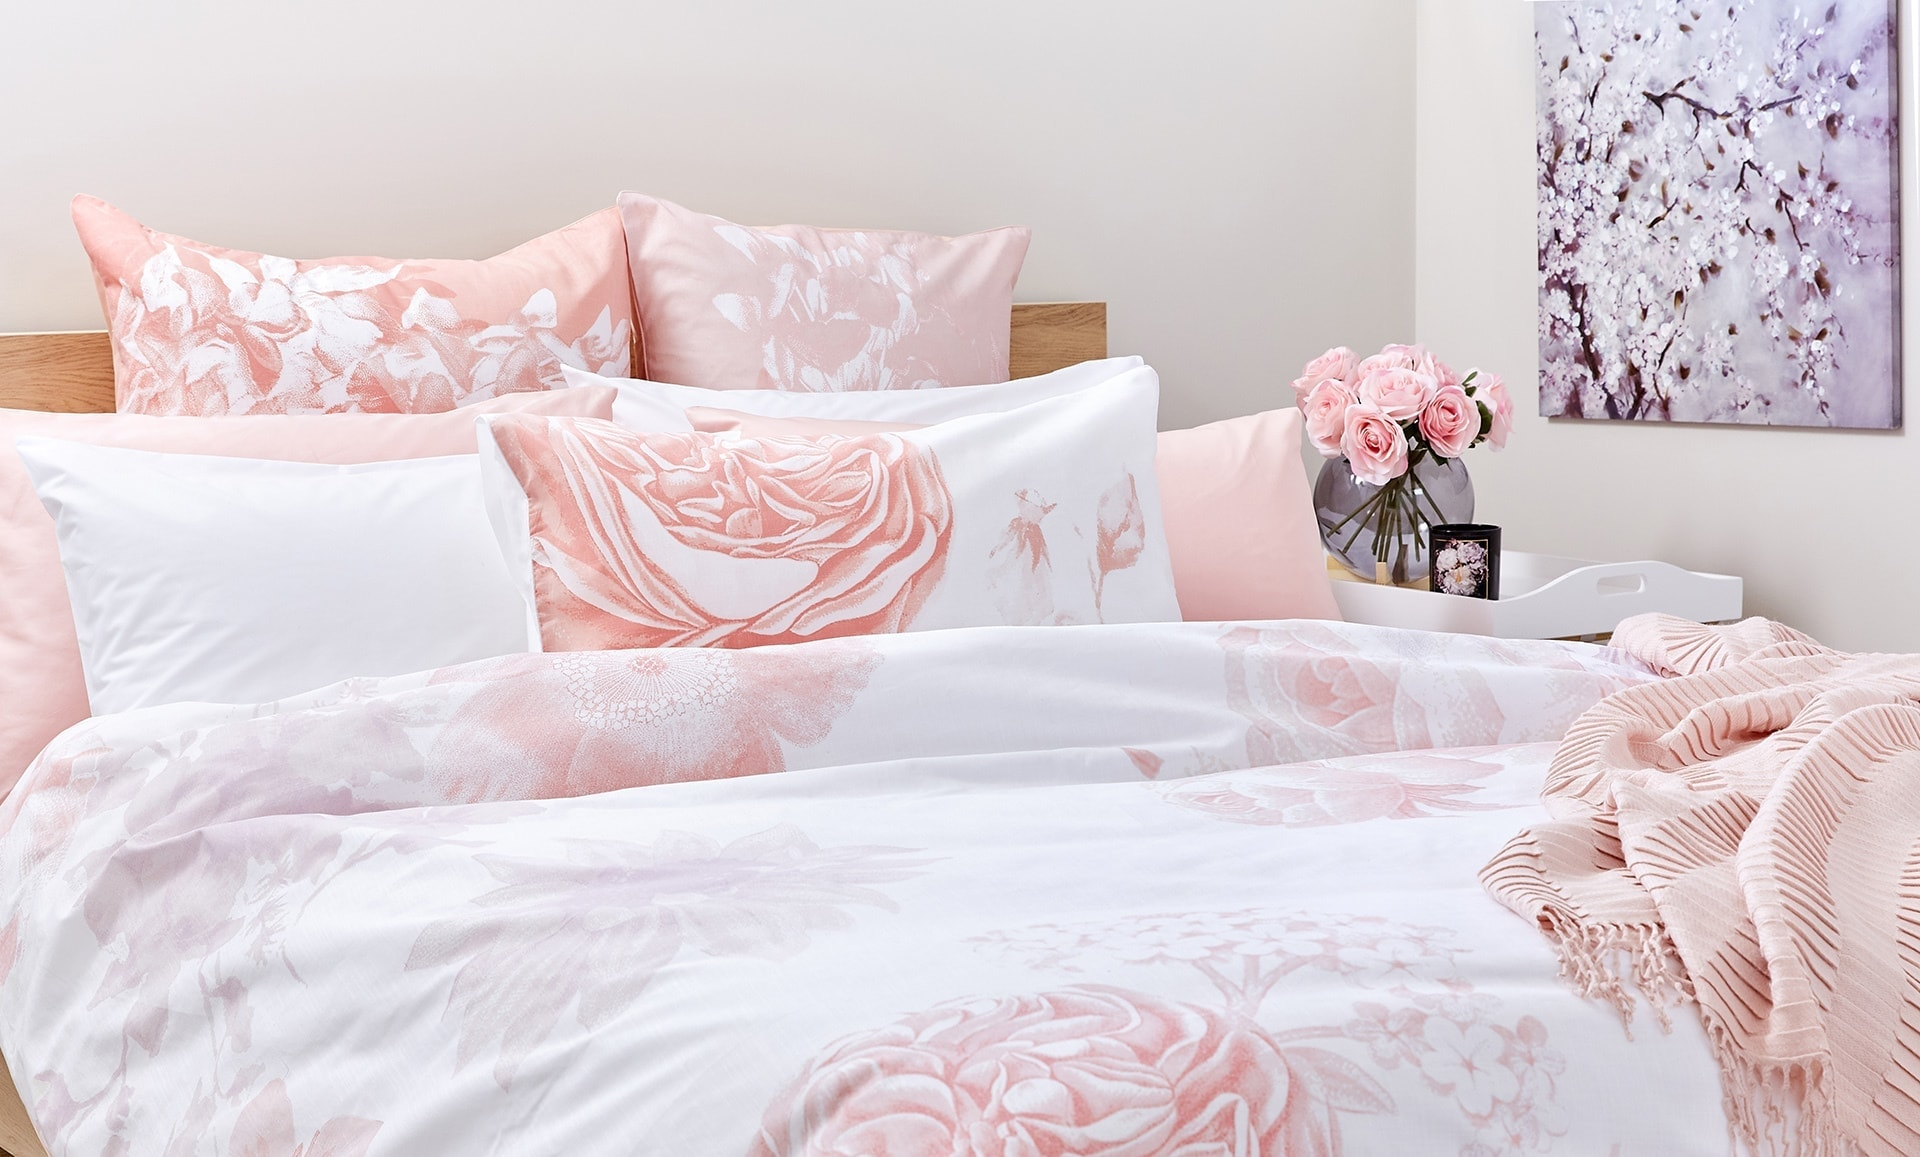 lorrain lea pink and white floral bedding set with floral artwork in bedroom